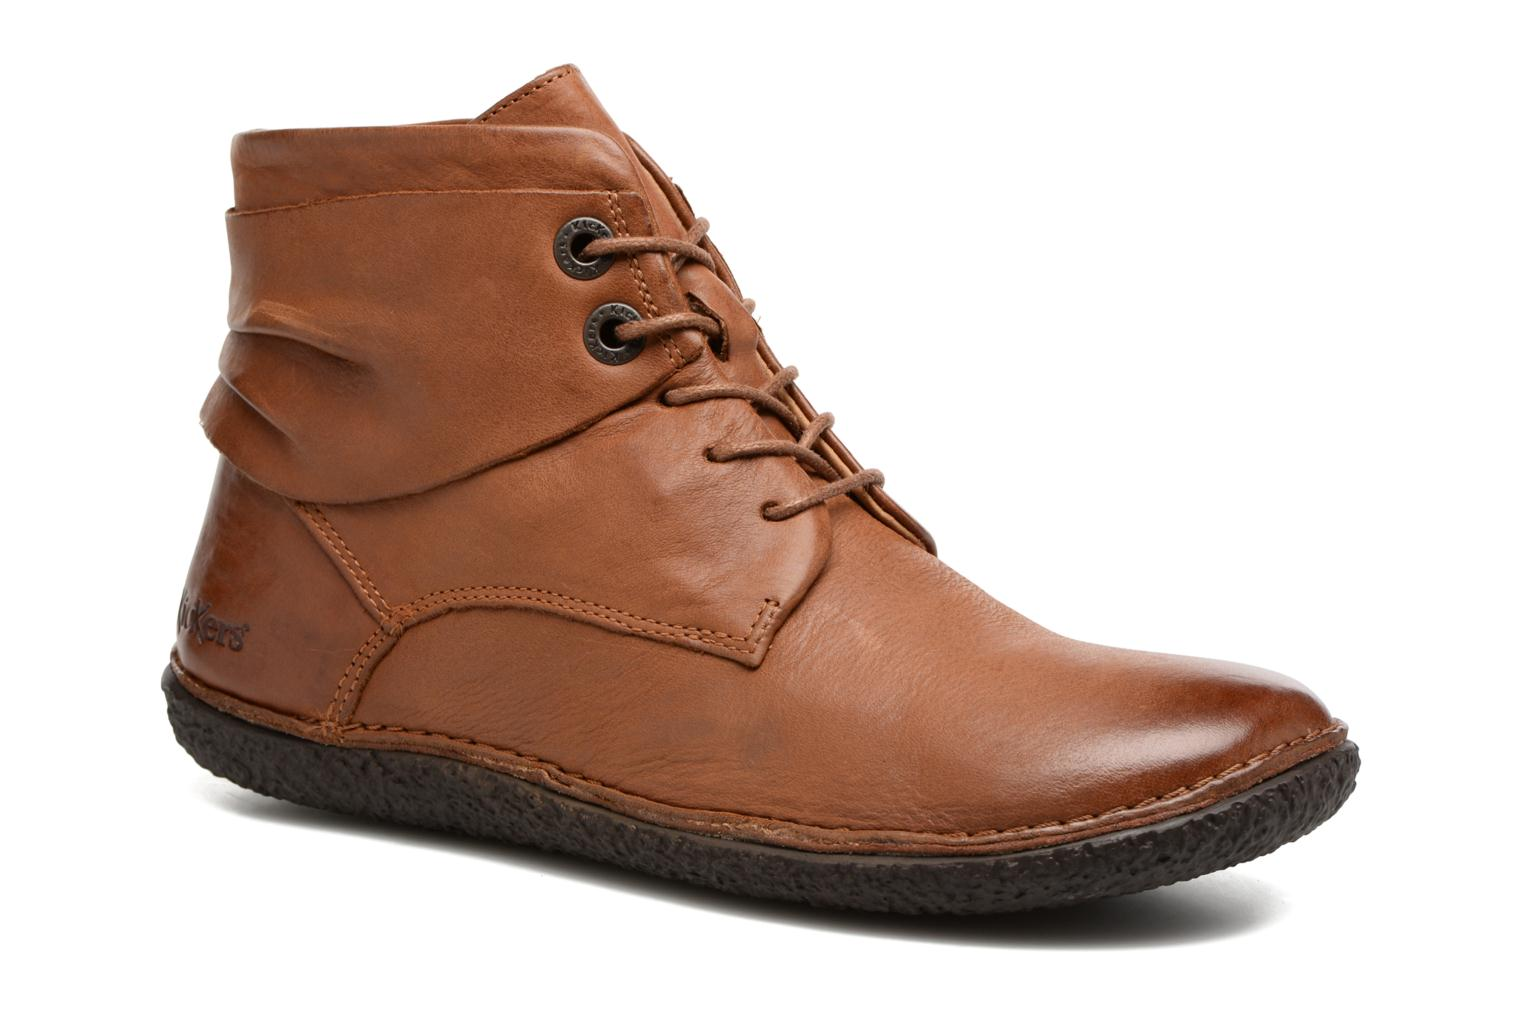 Marques Chaussure femme Kickers femme HOBYLOW FULL MARRON